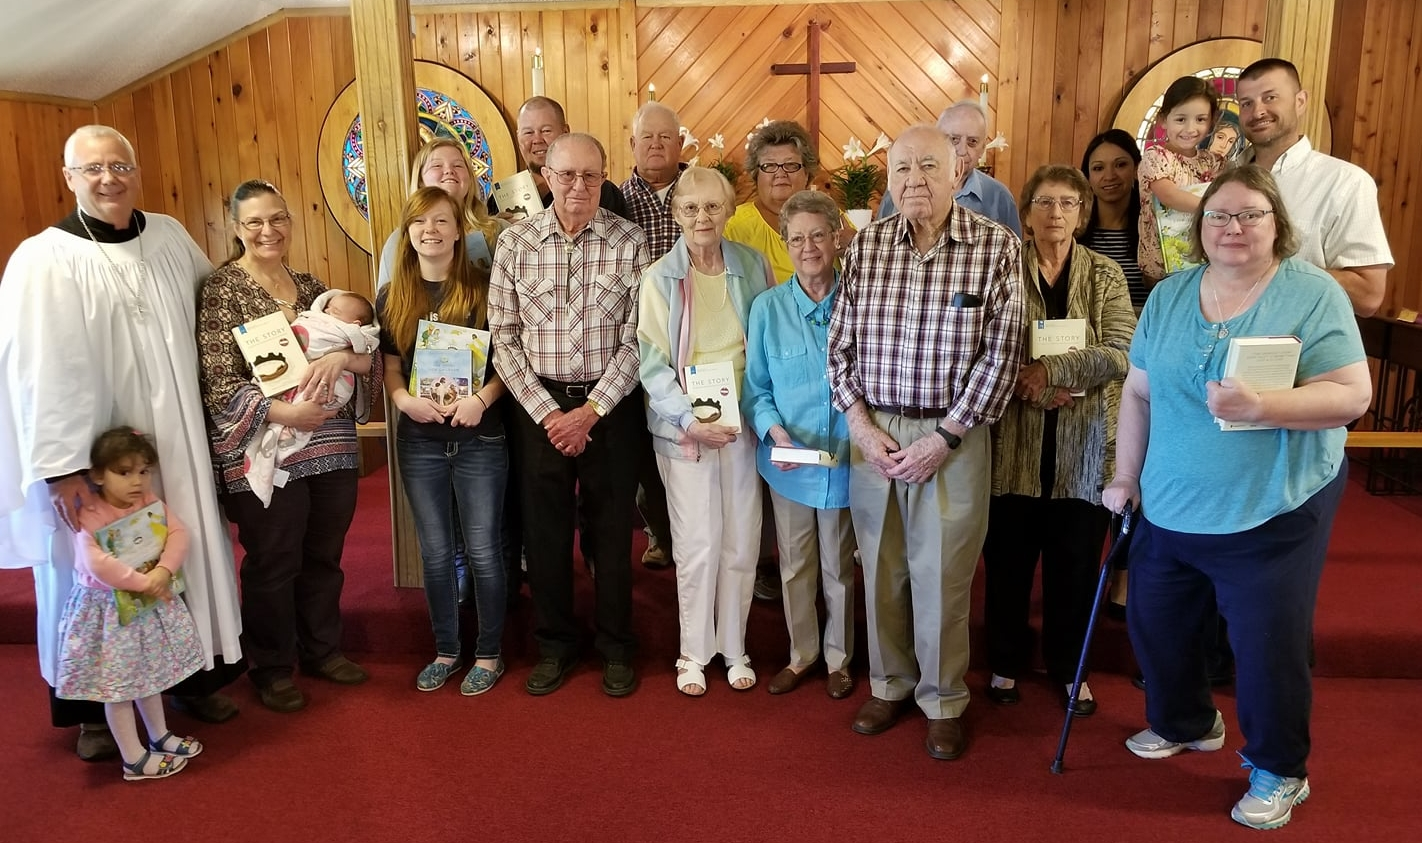 Members of St. Matthias', young and old, are taking Bishop Reed's challenge to read the Bible in one year. We are using the book, The Story, to take us on this journey.